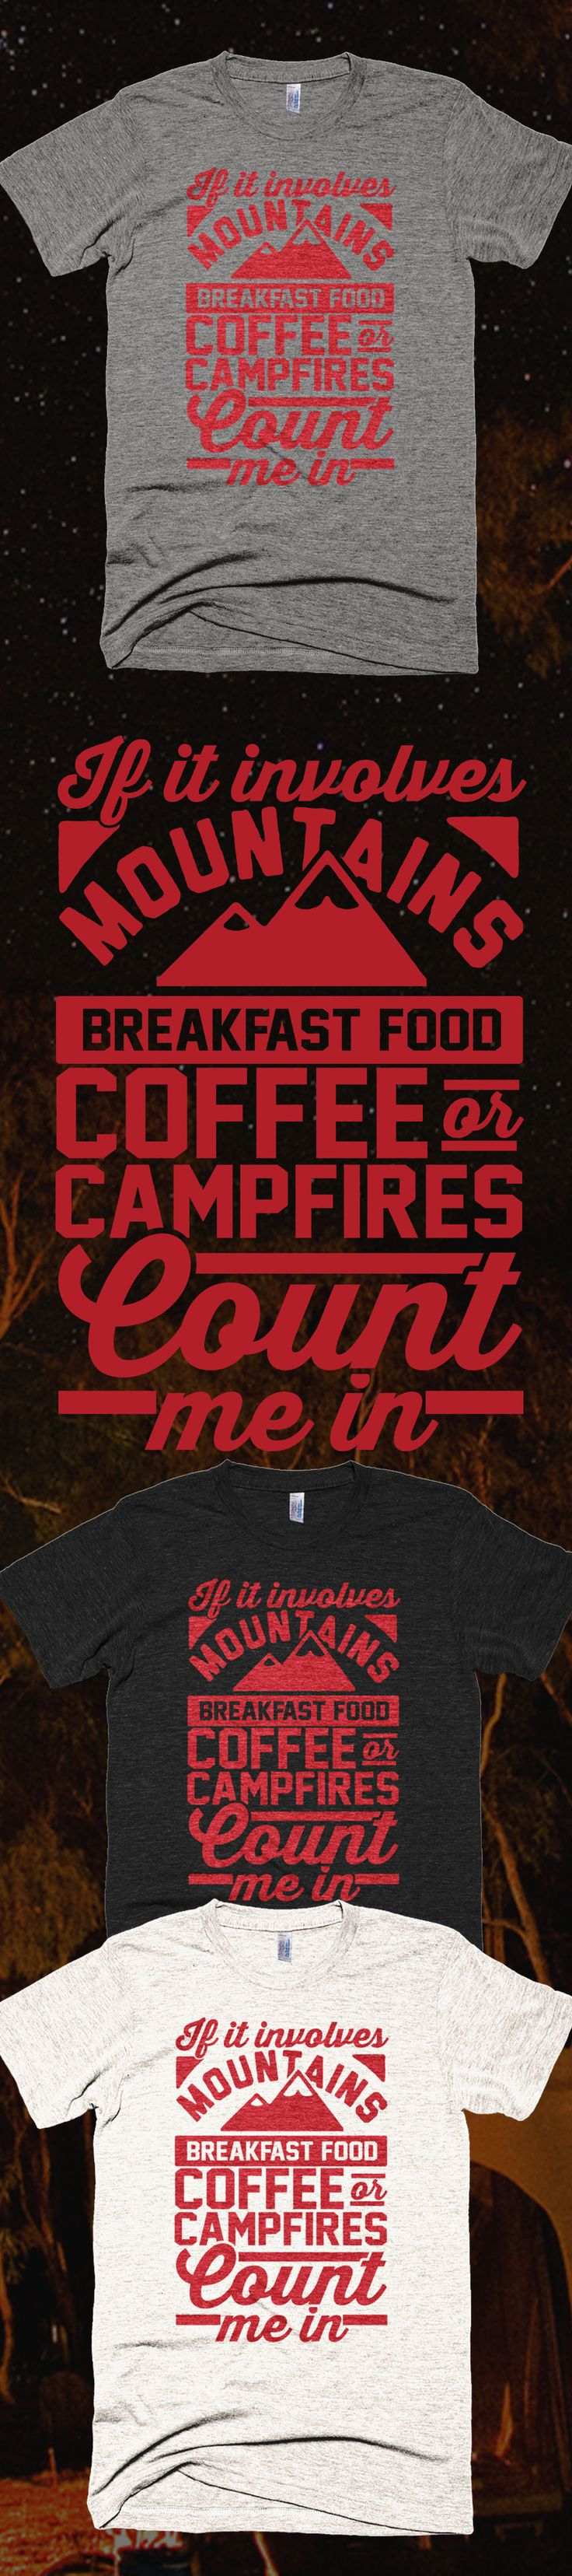 Camping Involves - Limited Edition. Only 2 days left for FREE SHIPPING, grab yours or gift it to a friend. You will both love it